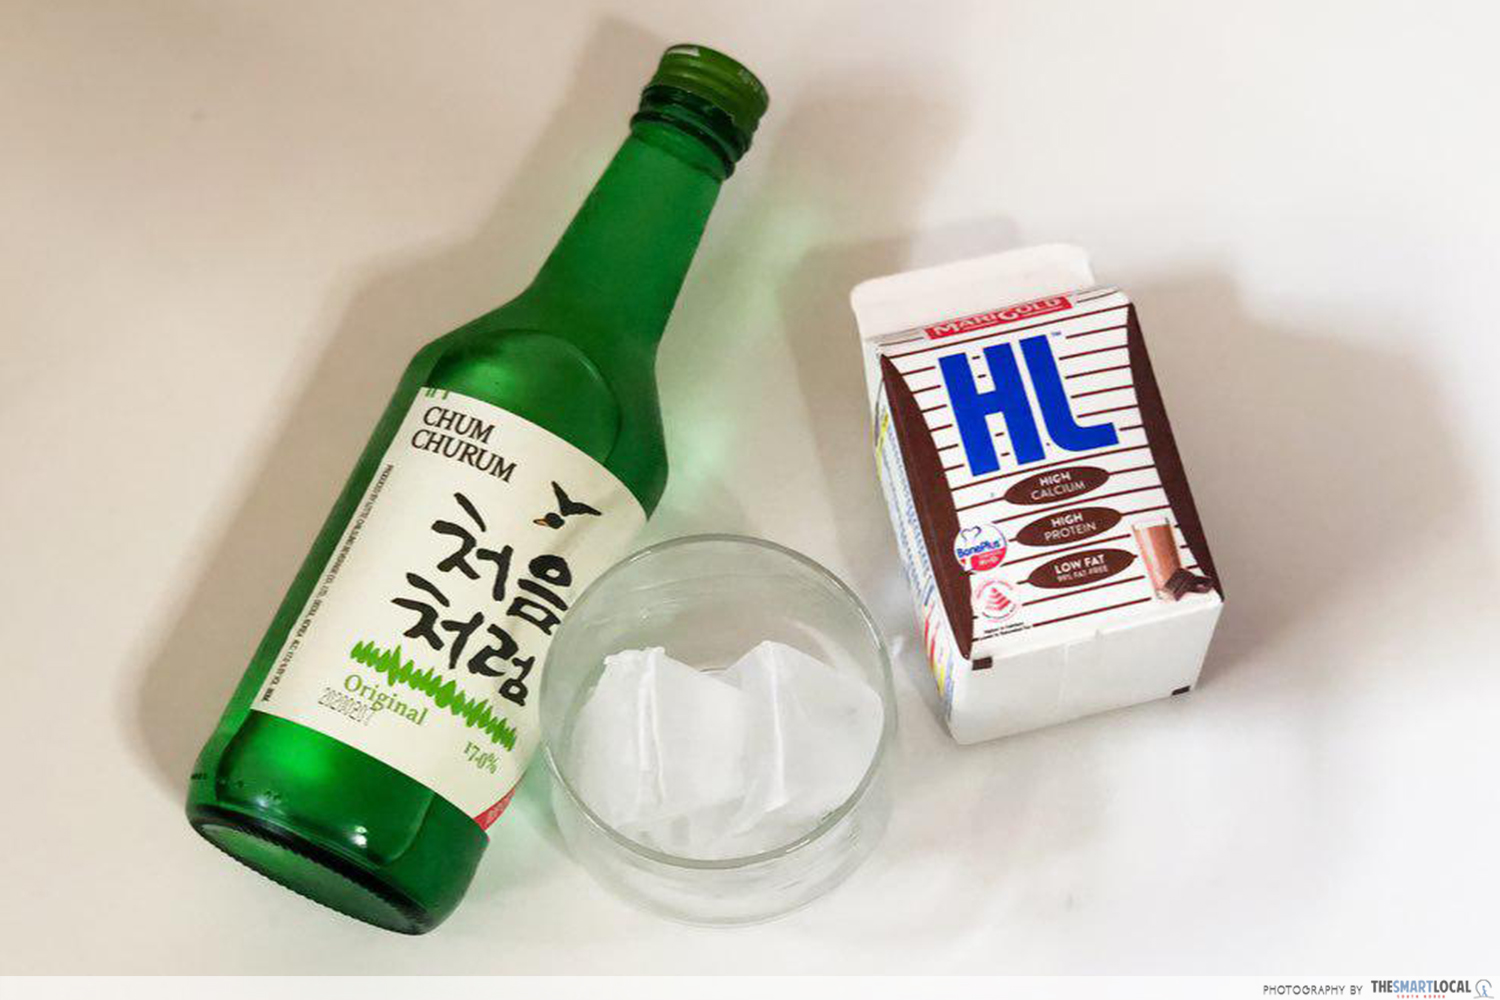 Chocolate milk and soju